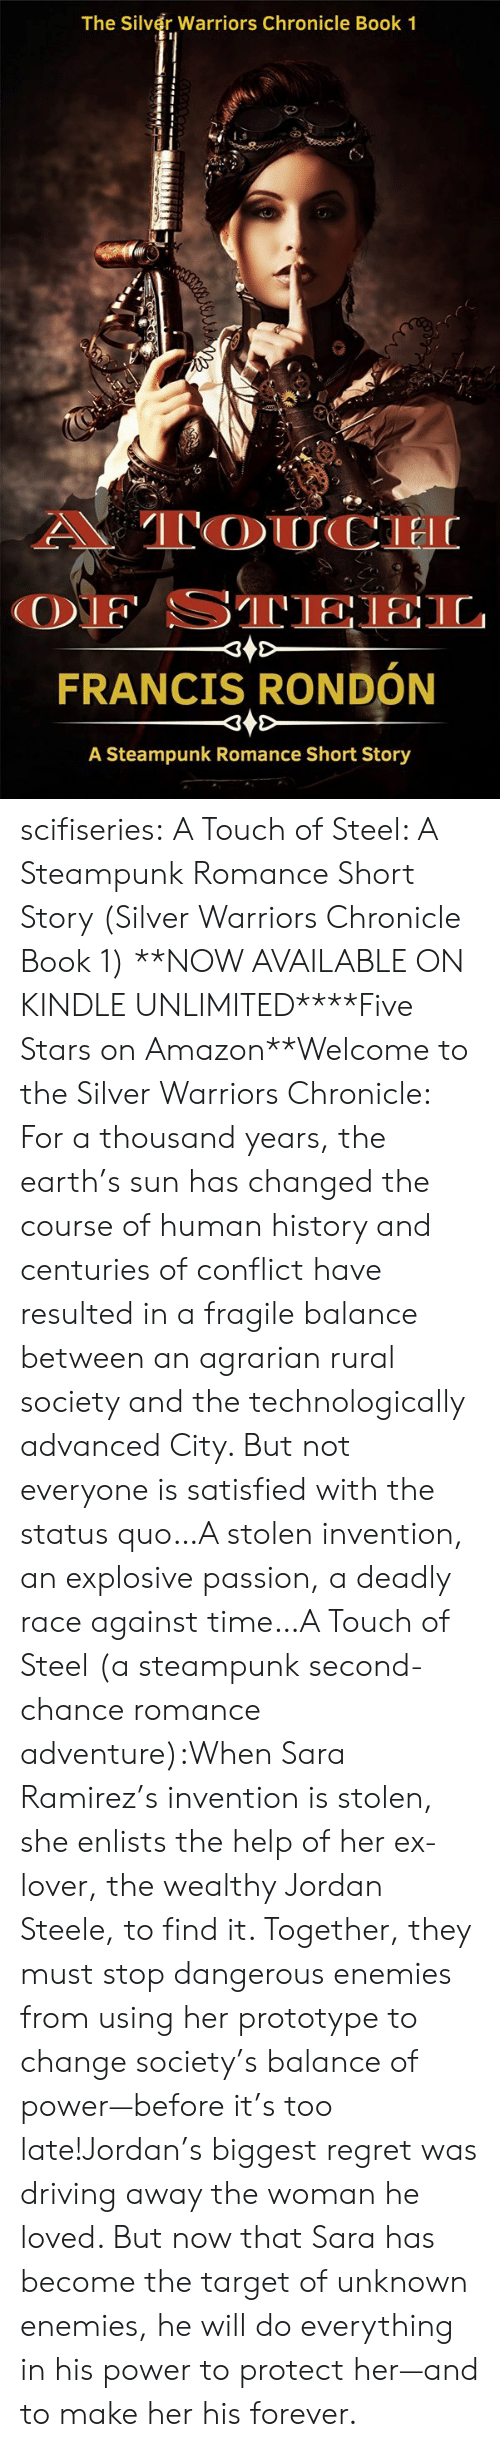 unknown: The Silver Warriors Chronicle Book 1  A TOUCH  OF STEEL  FRANCIS RONDÓN  A Steampunk Romance Short Story scifiseries:   A Touch of Steel: A Steampunk Romance Short Story (Silver Warriors Chronicle Book 1)   **NOW AVAILABLE ON KINDLE UNLIMITED****Five Stars on Amazon**Welcome to the Silver Warriors Chronicle: For a thousand years, the earth's sun has changed the course of human history and centuries of conflict have resulted in a fragile balance between an agrarian rural society and the technologically advanced City. But not everyone is satisfied with the status quo…A stolen invention, an explosive passion, a deadly race against time…A Touch of Steel (a steampunk second-chance romance adventure):When Sara Ramirez's invention is stolen, she enlists the help of her ex-lover, the wealthy Jordan Steele, to find it. Together, they must stop dangerous enemies from using her prototype to change society's balance of power—before it's too late!Jordan's biggest regret was driving away the woman he loved. But now that Sara has become the target of unknown enemies, he will do everything in his power to protect her—and to make her his forever.